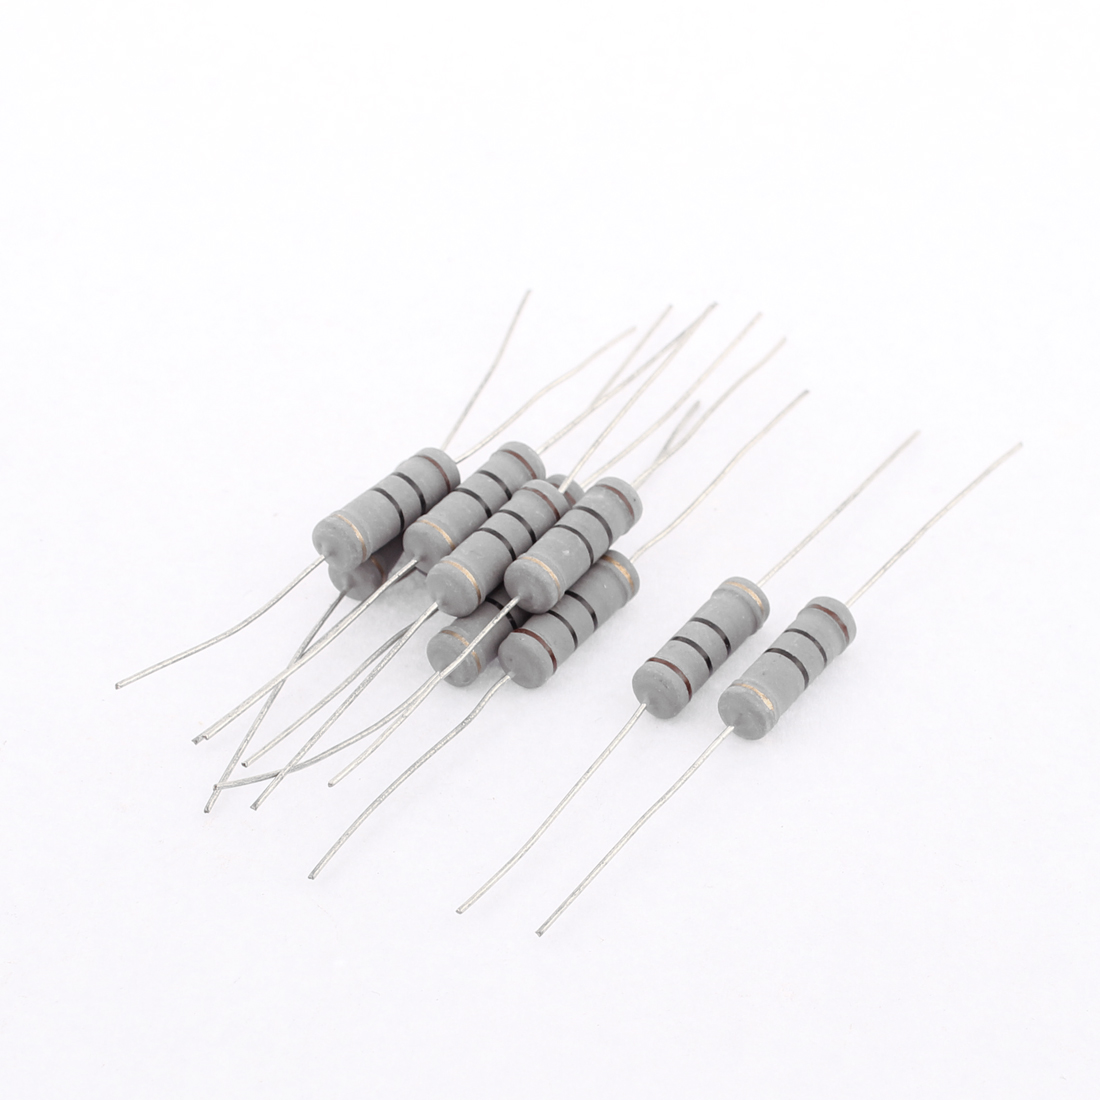 11Pcs 3W 5% Tolerance 10 Ohm Axial Lead Carbon Film Resistors